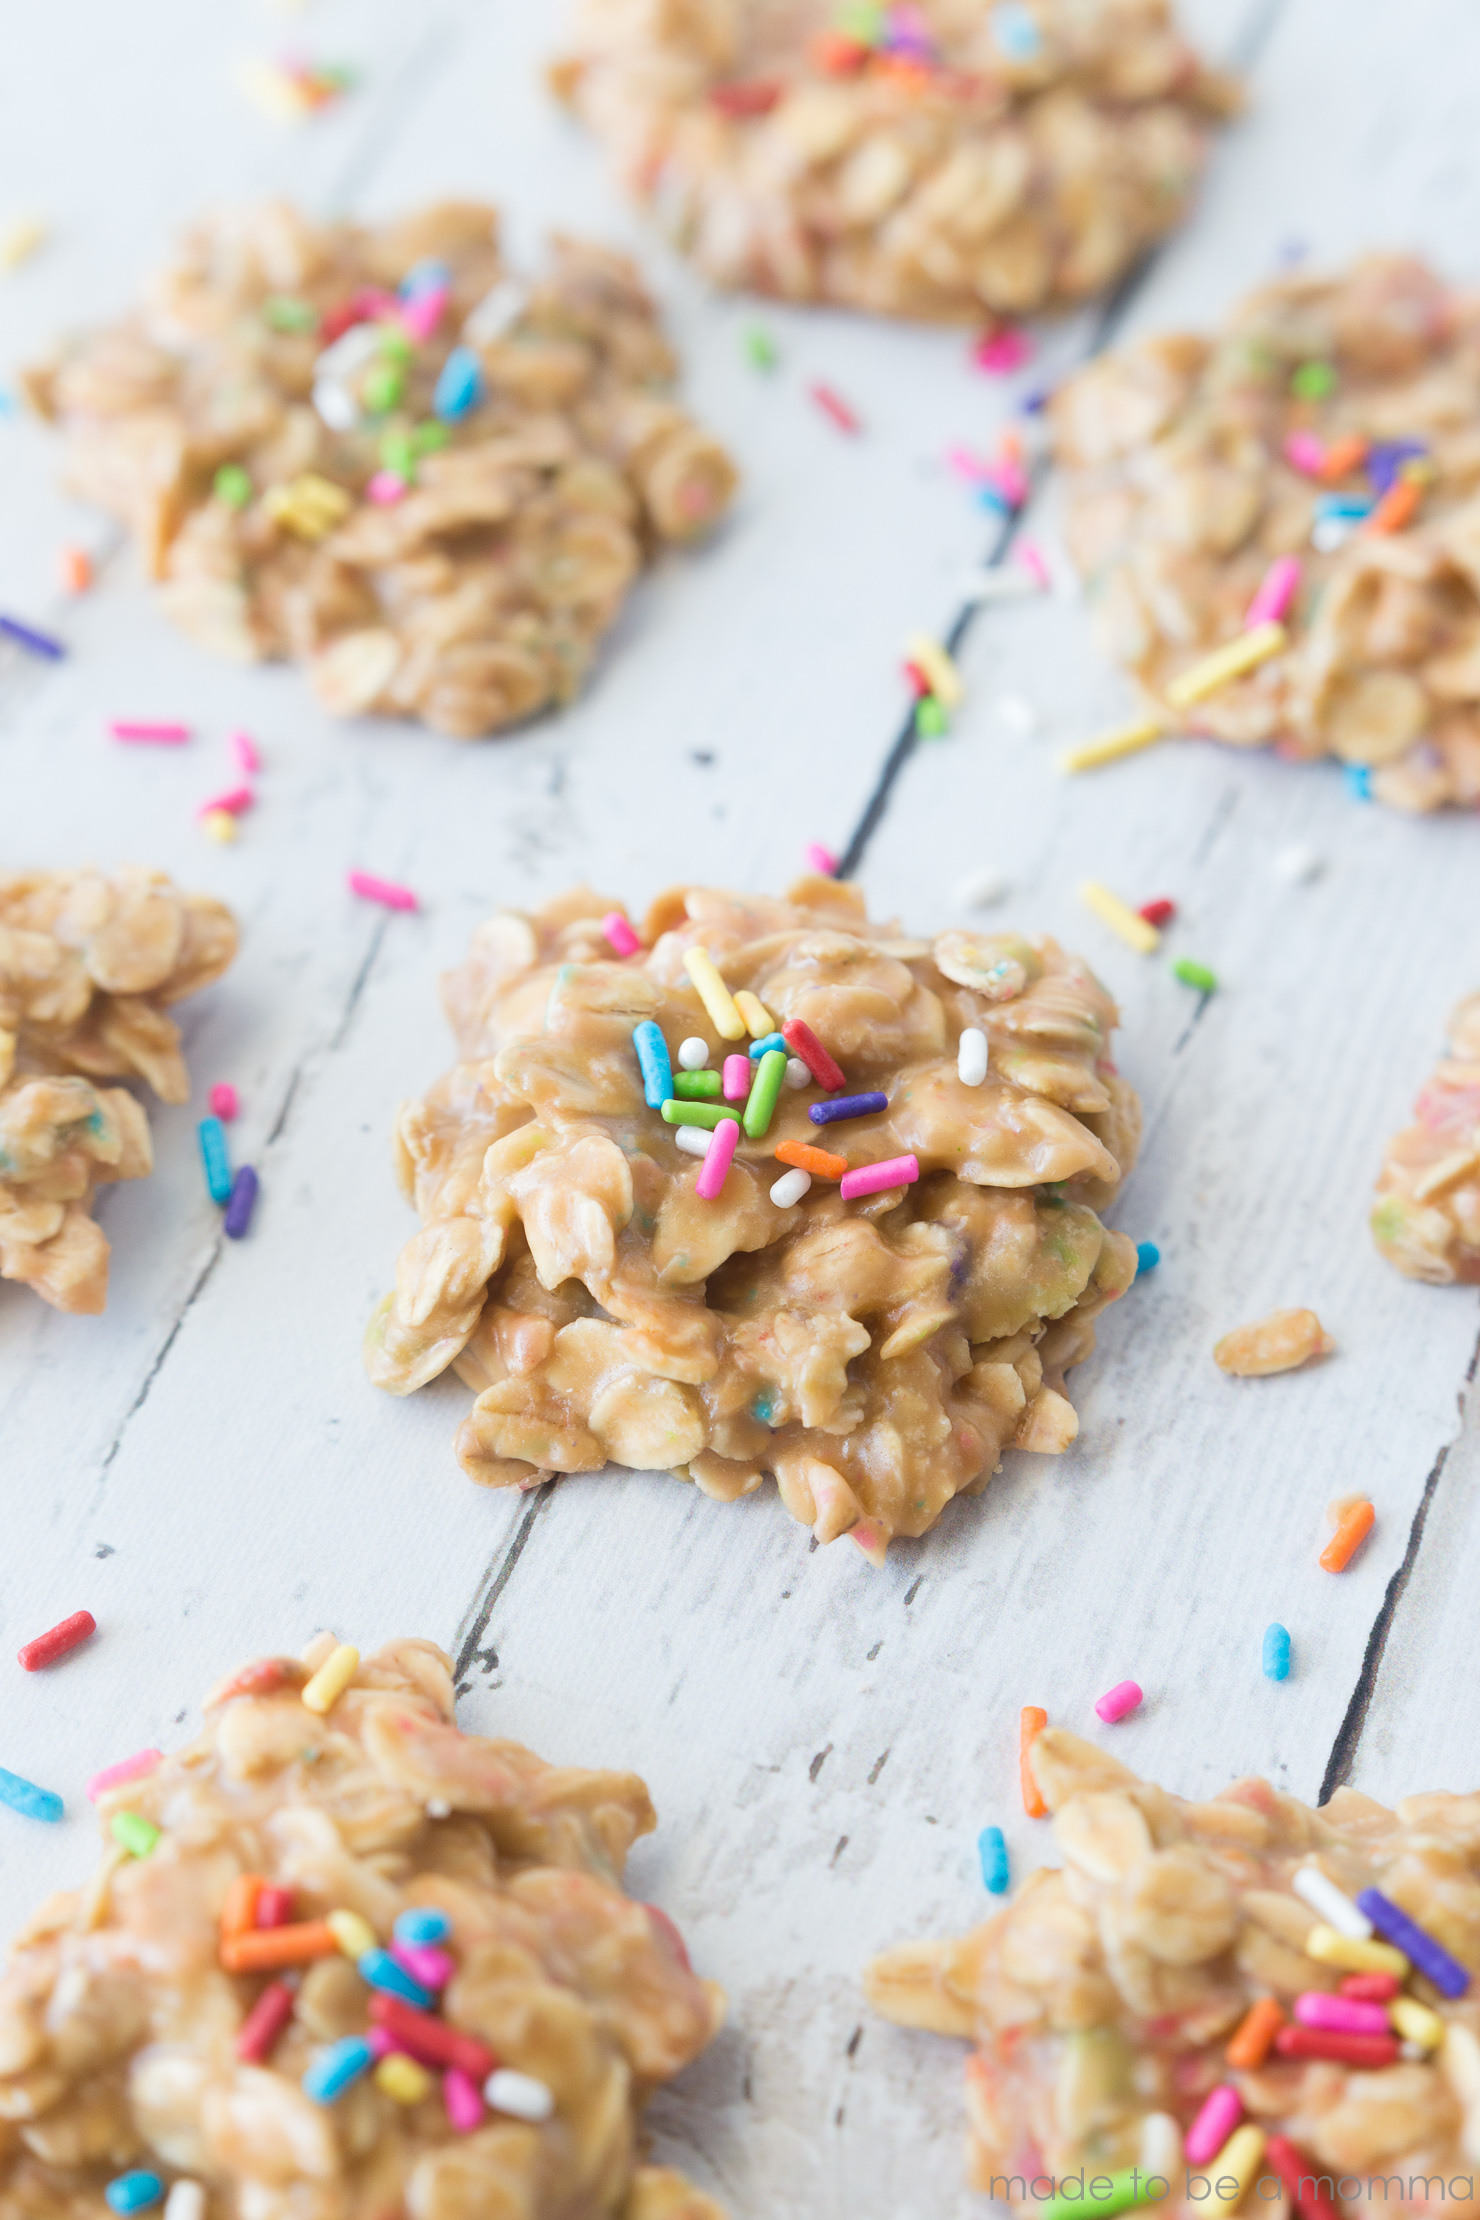 No-Bake Butterscotch Sprinkle Cookies: a fun twist on an old classic. What's better than not having to heat up the oven?